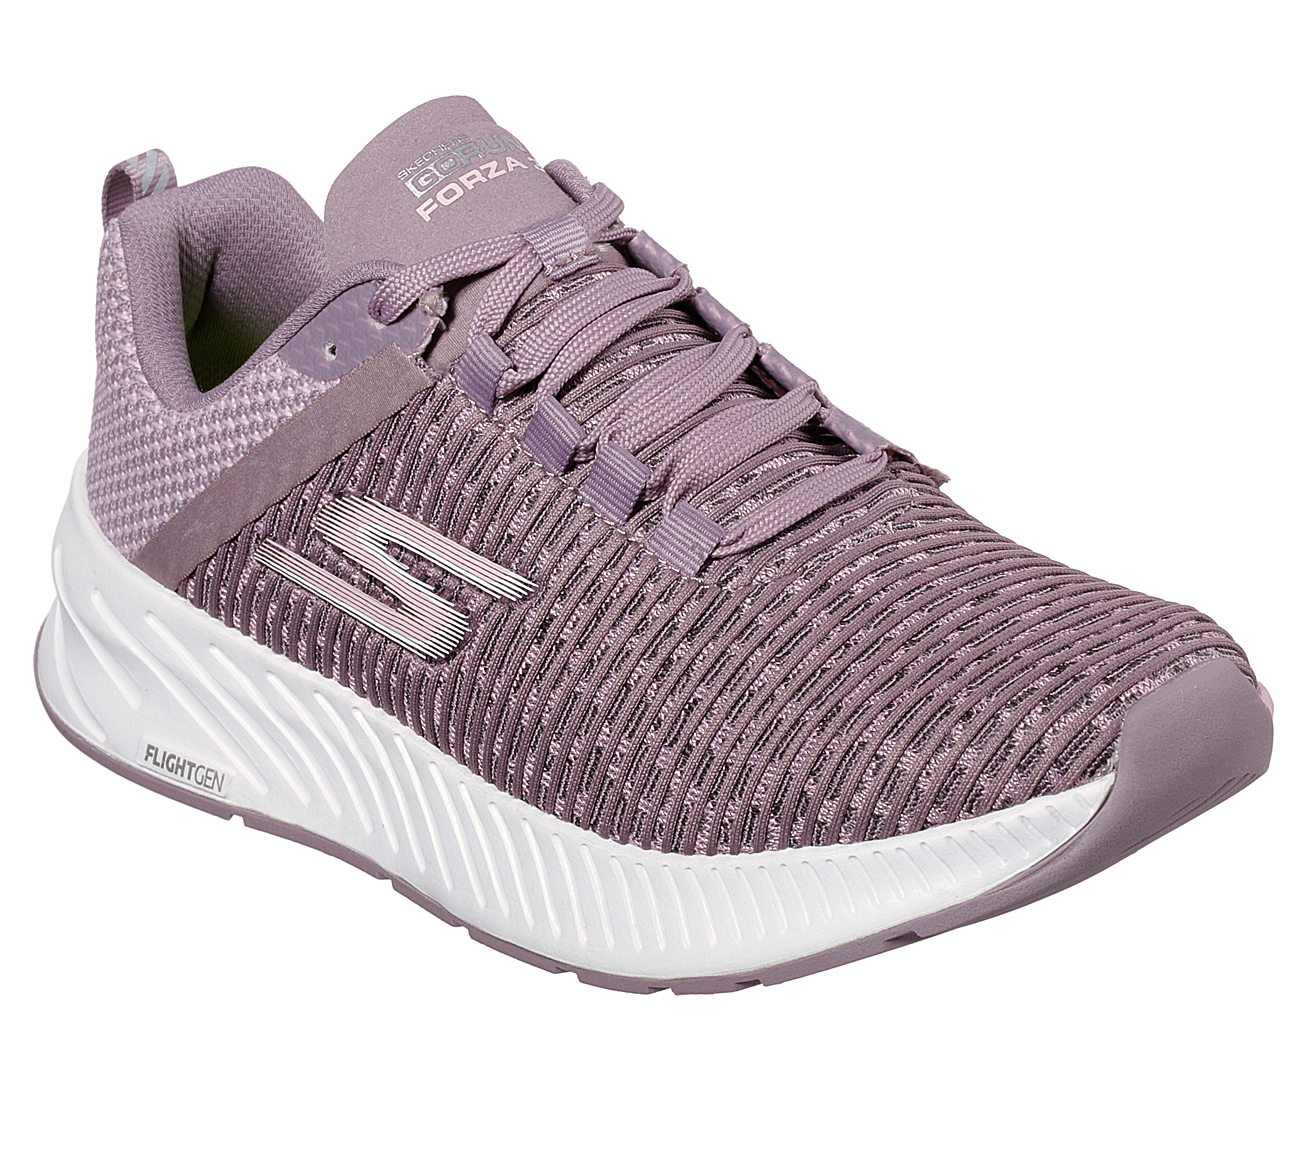 aab9bf9a3a Buy SKECHERS Skechers GOrun Forza 3 Skechers Performance Shoes only ...